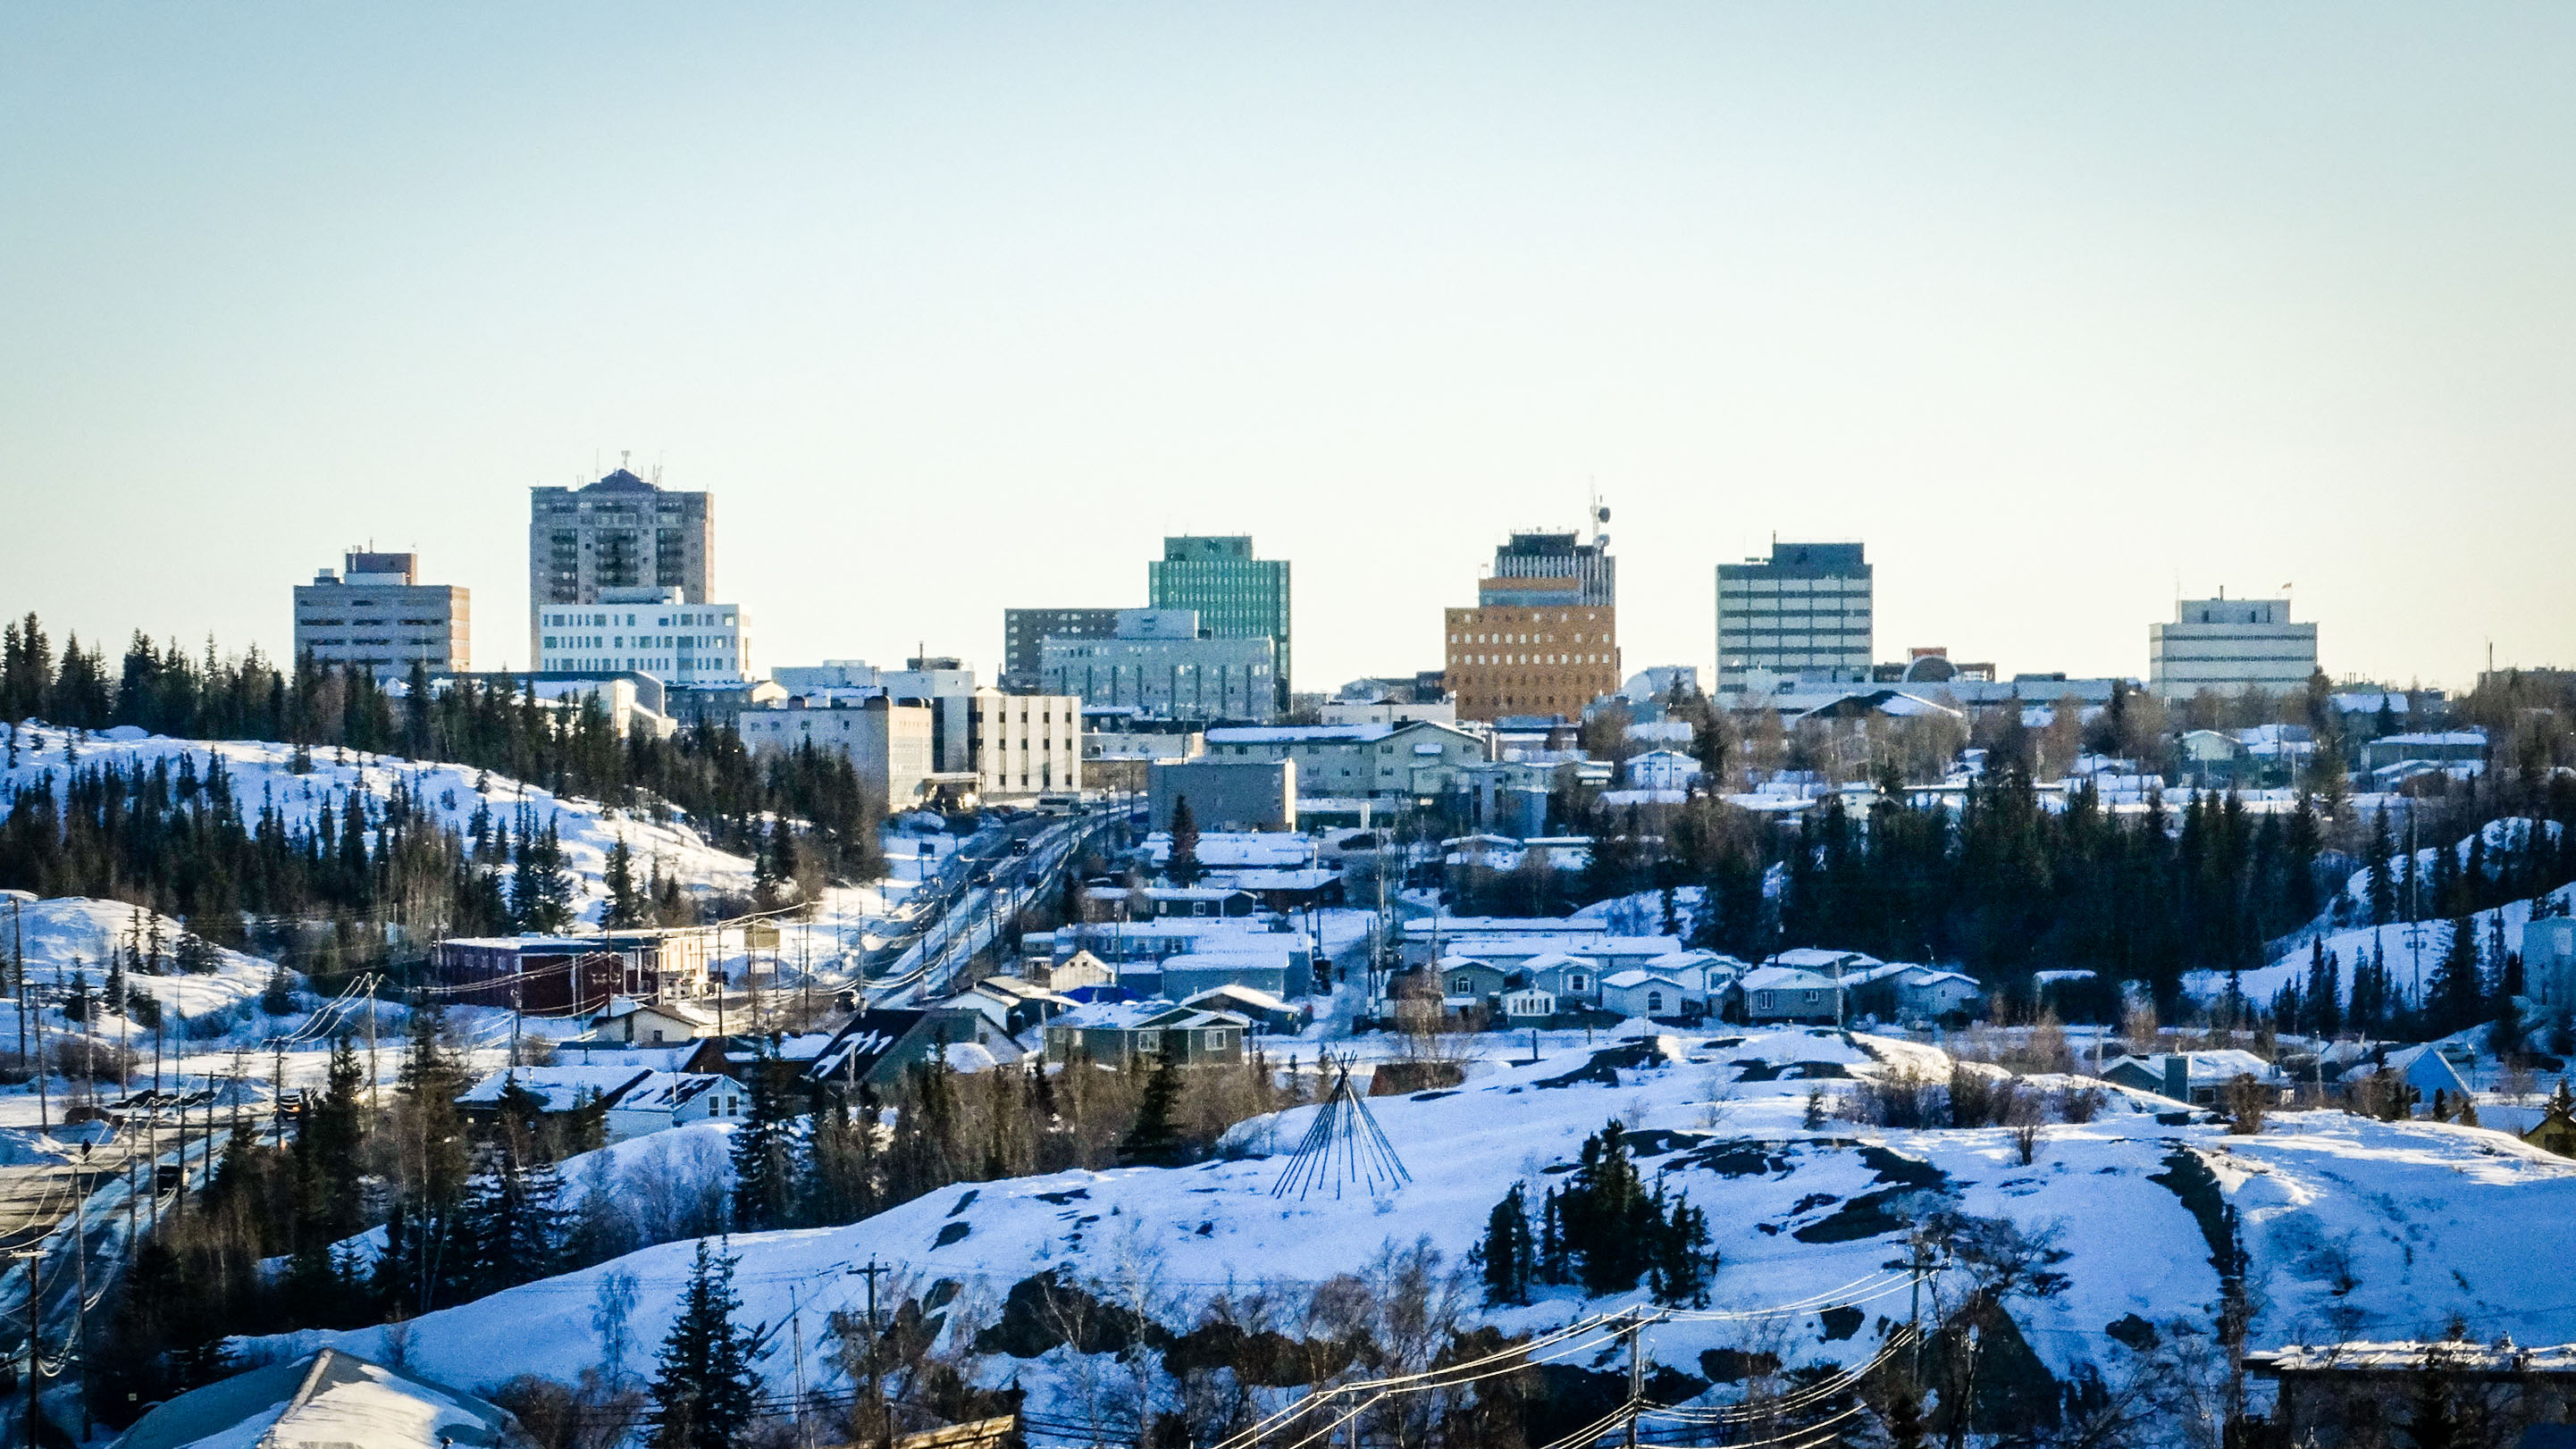 A view of downtown Yellowknife from Pilot's Monument